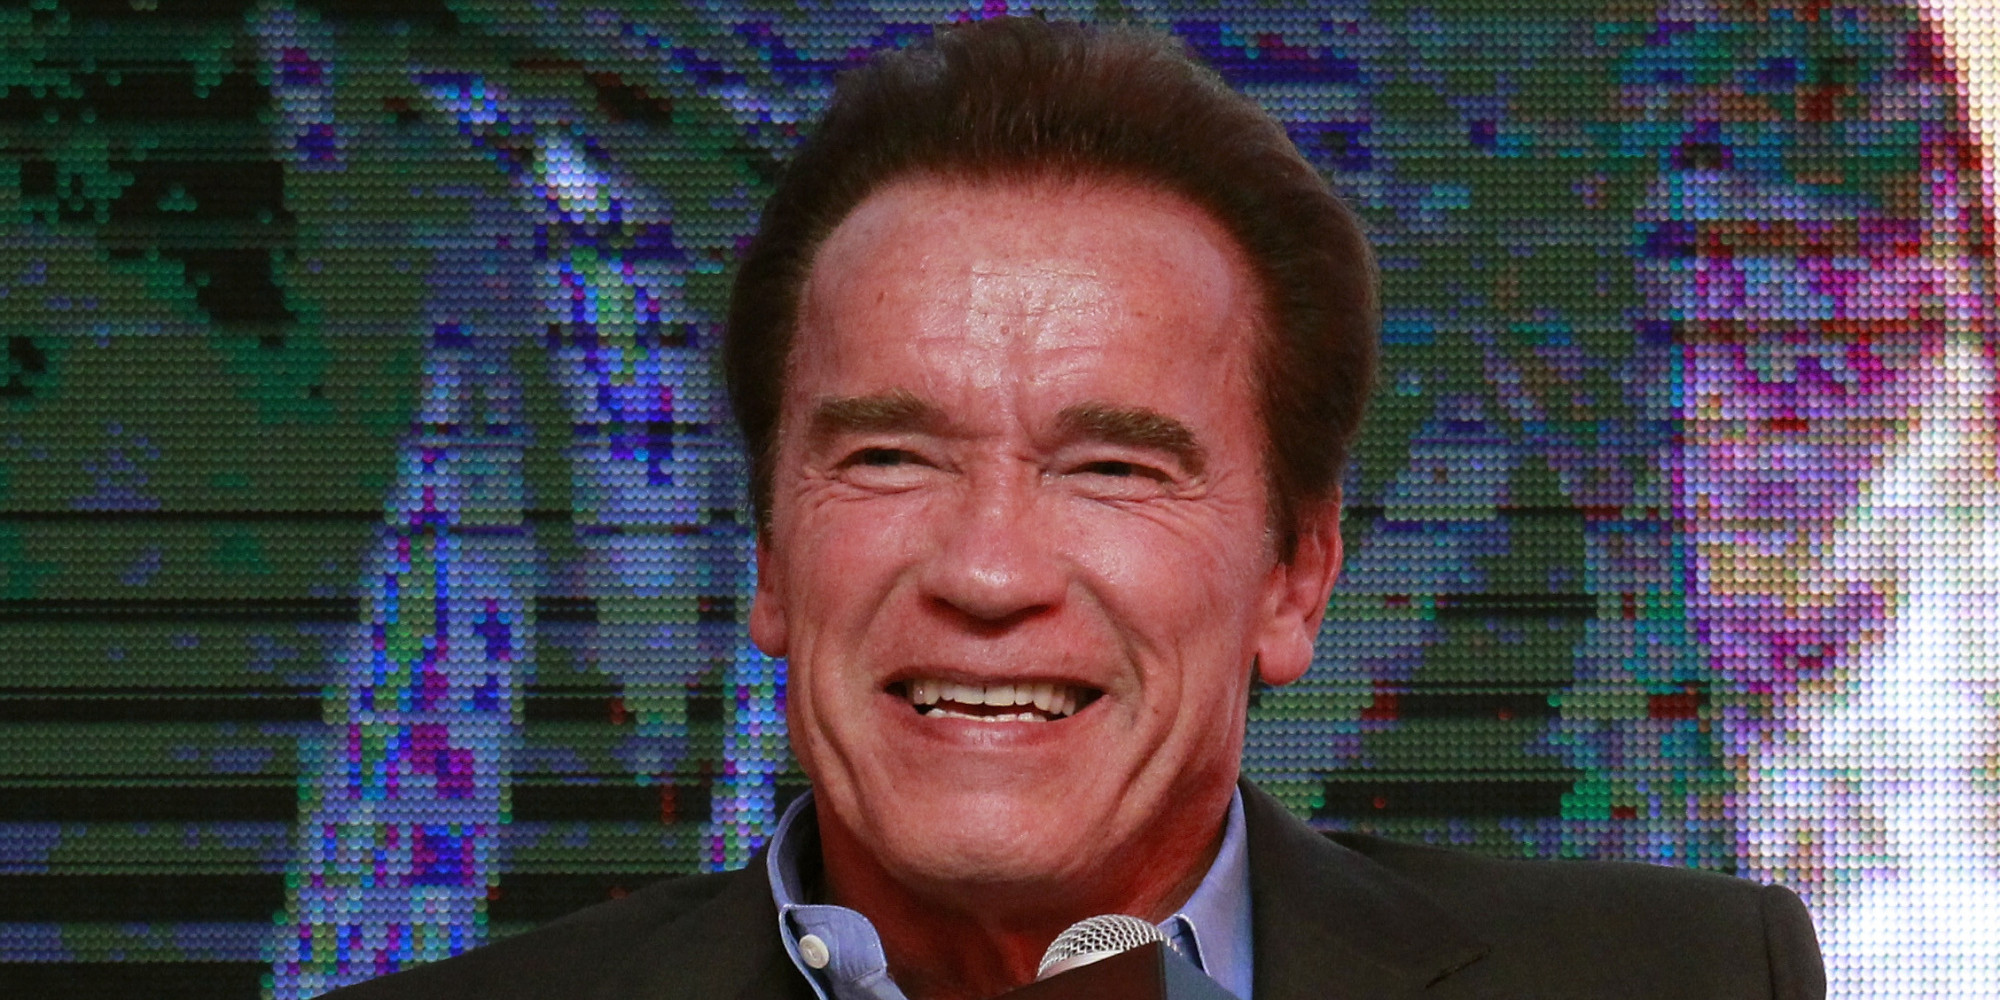 How I Got Arnold Schwarzenegger to Star in My Movie About